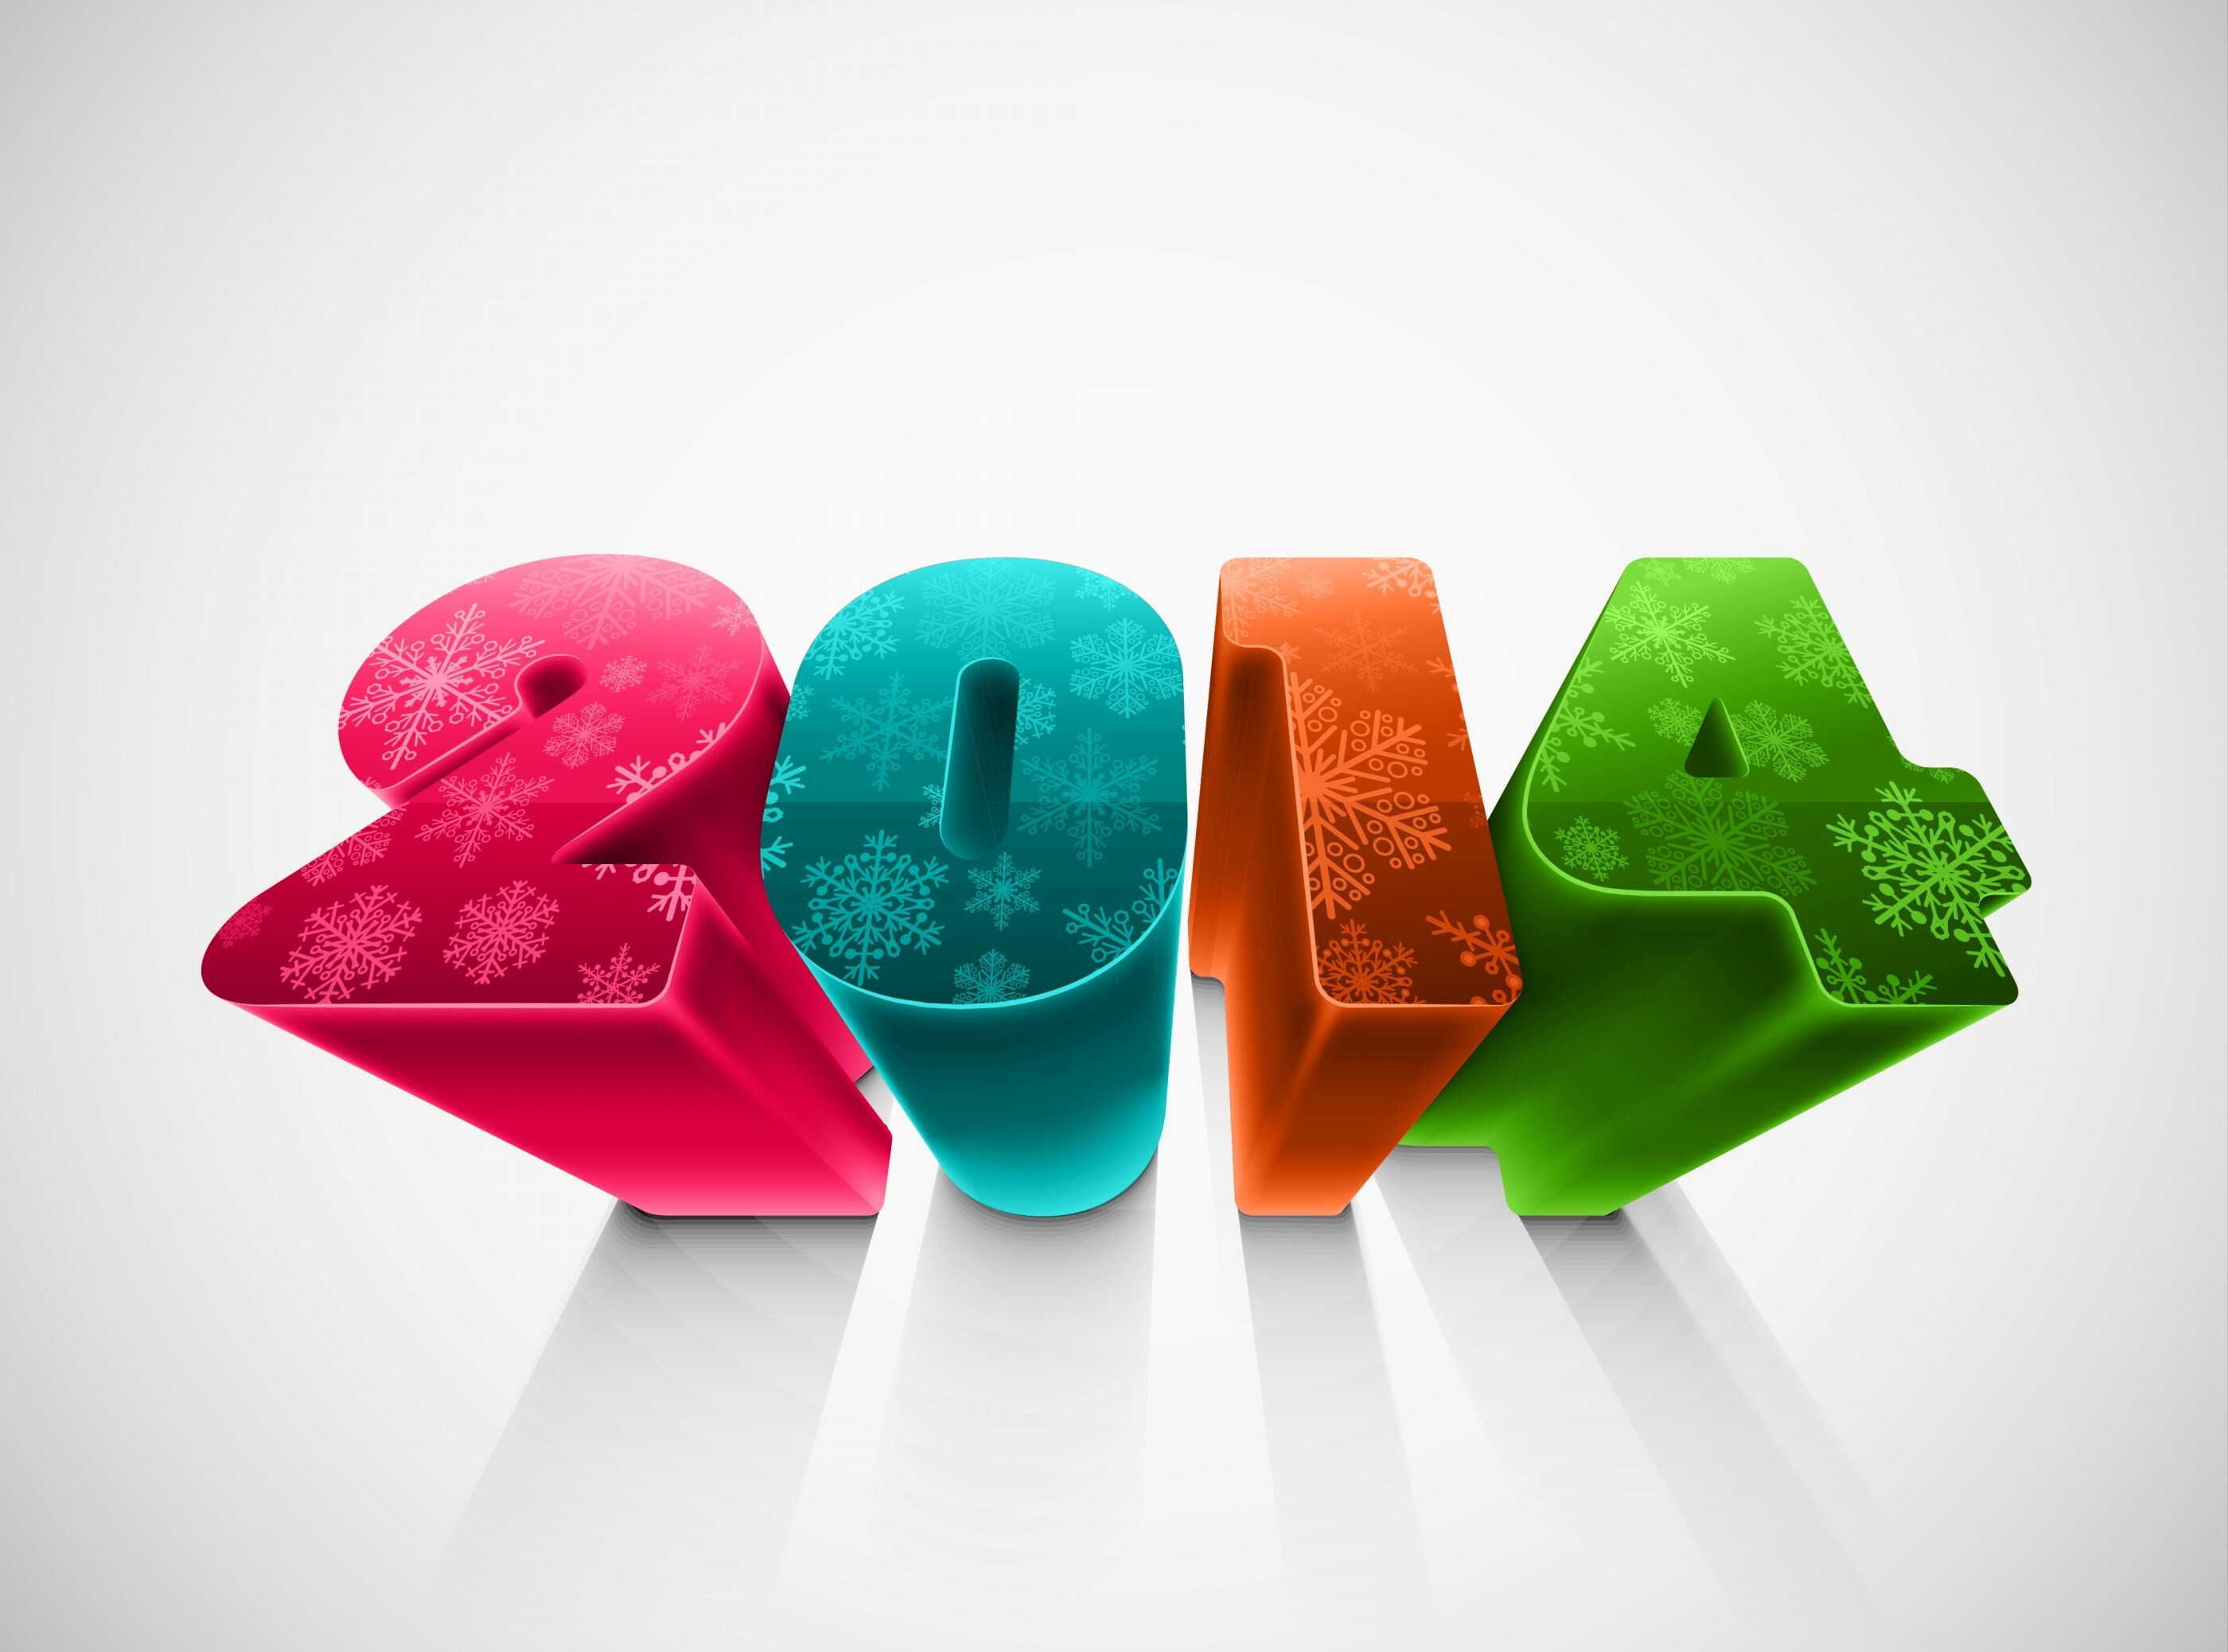 2014 happy new year wishing wallpaper free download hd wallpapers new year wallpapers previous wallpaper 2014 happy new year wishing wallpaper free download voltagebd Image collections